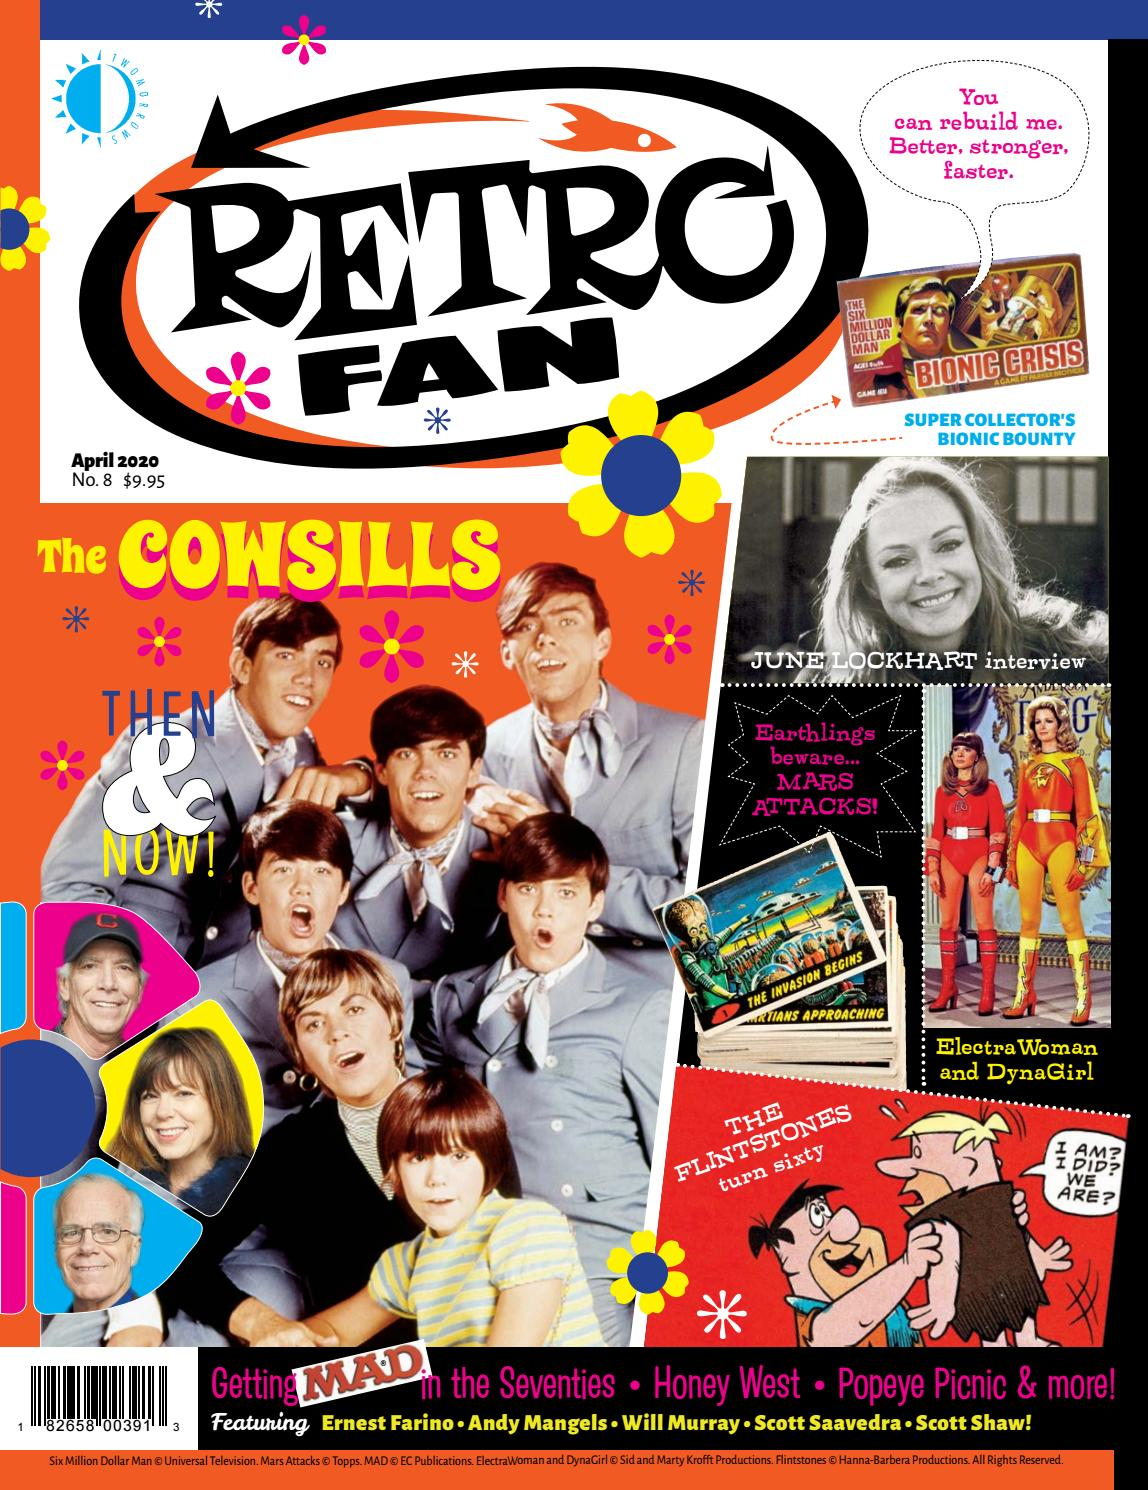 RetroFan #8 by TwoMorrows Publishing - issuu